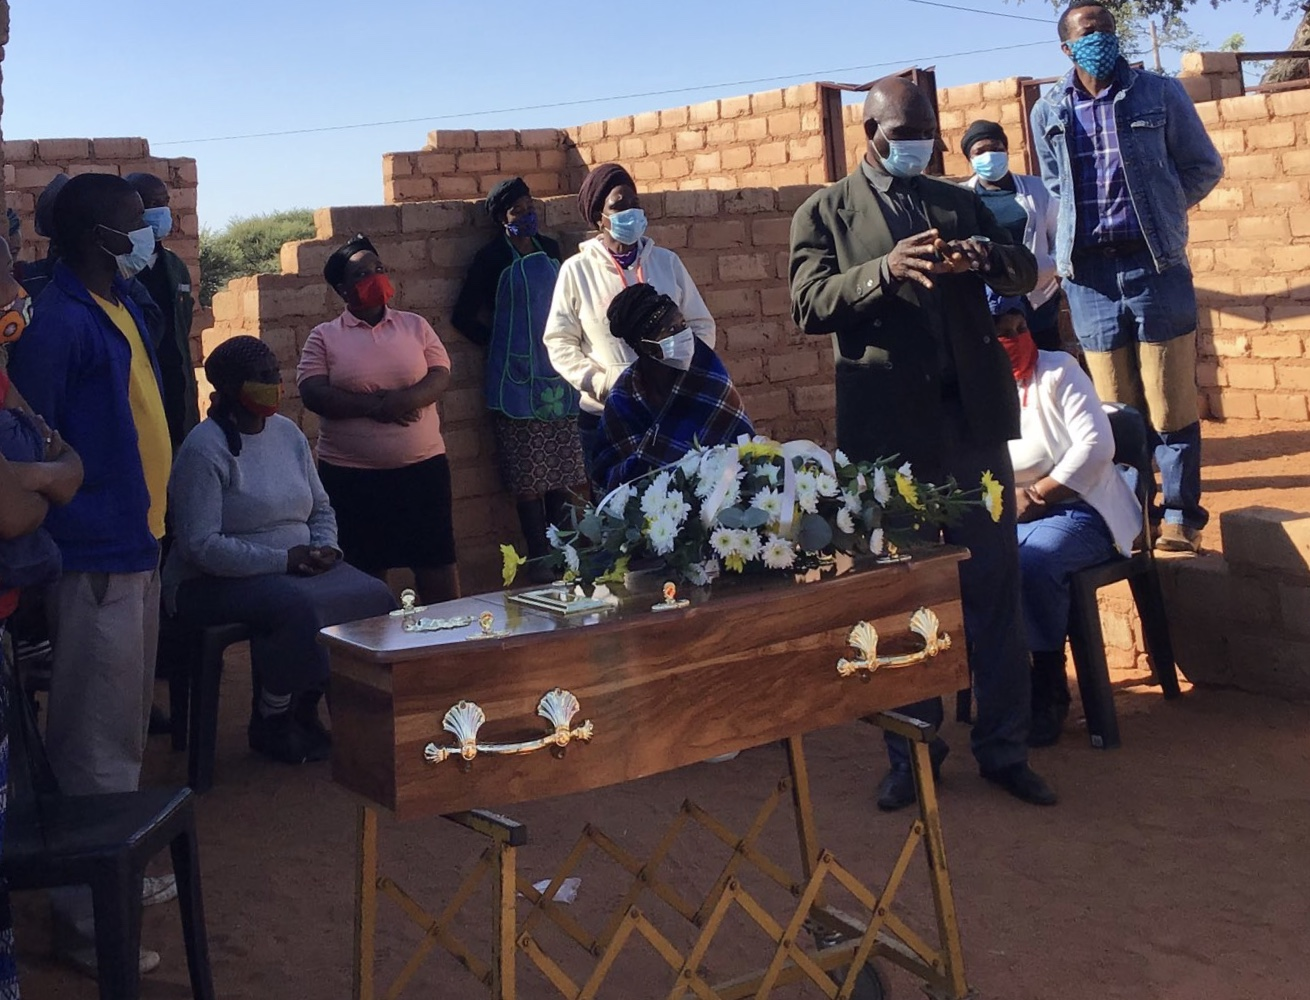 Sewer death toddler laid to rest